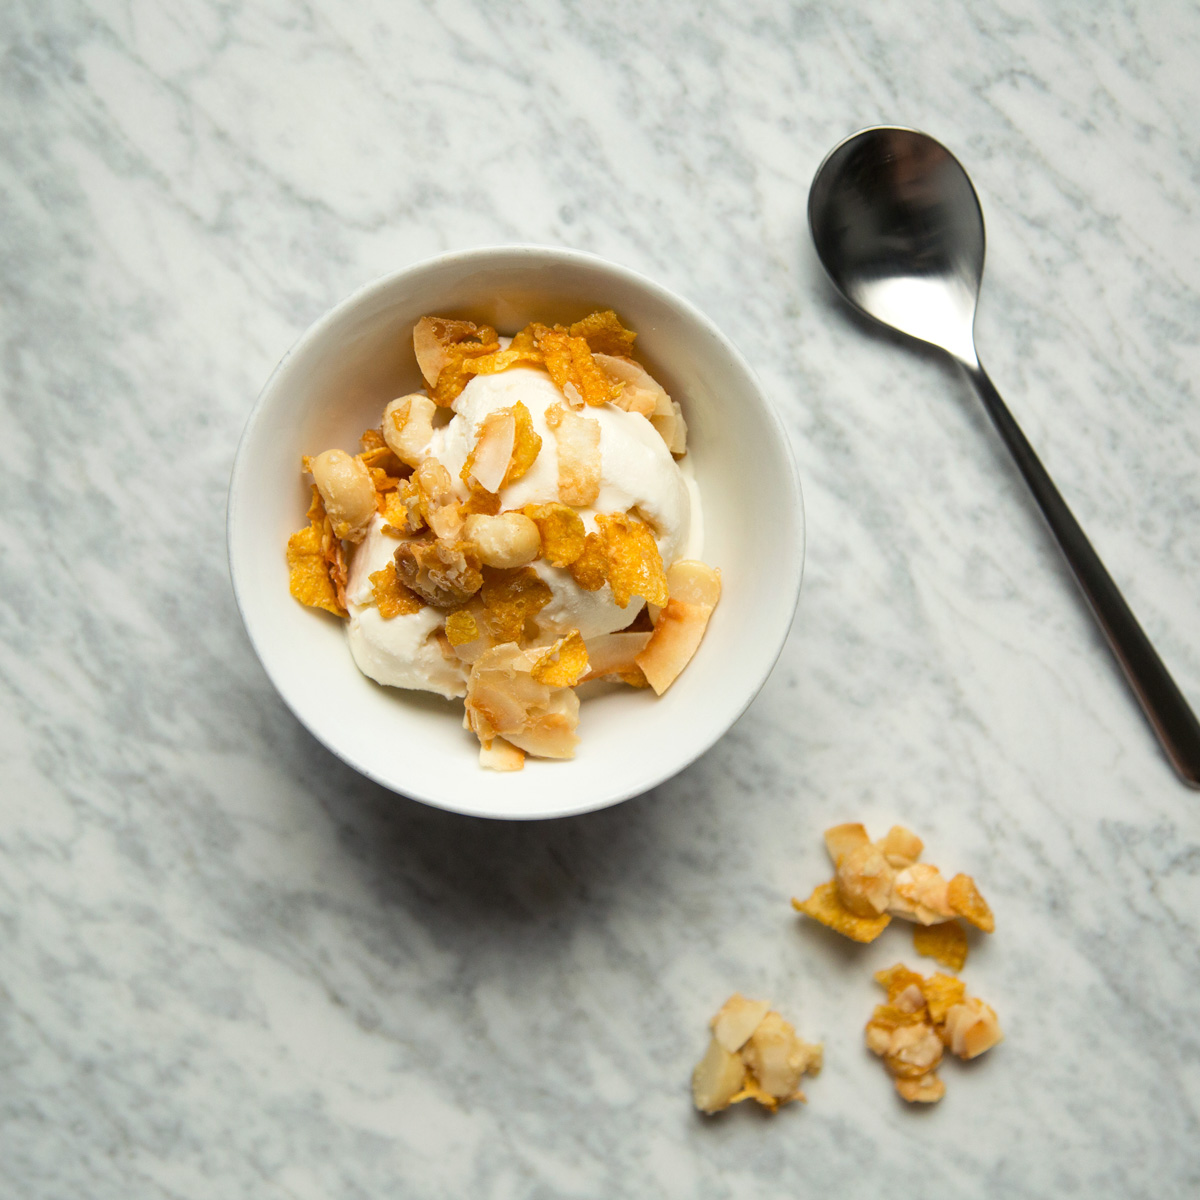 Crunchy Mixed Nut and Coconut Topping